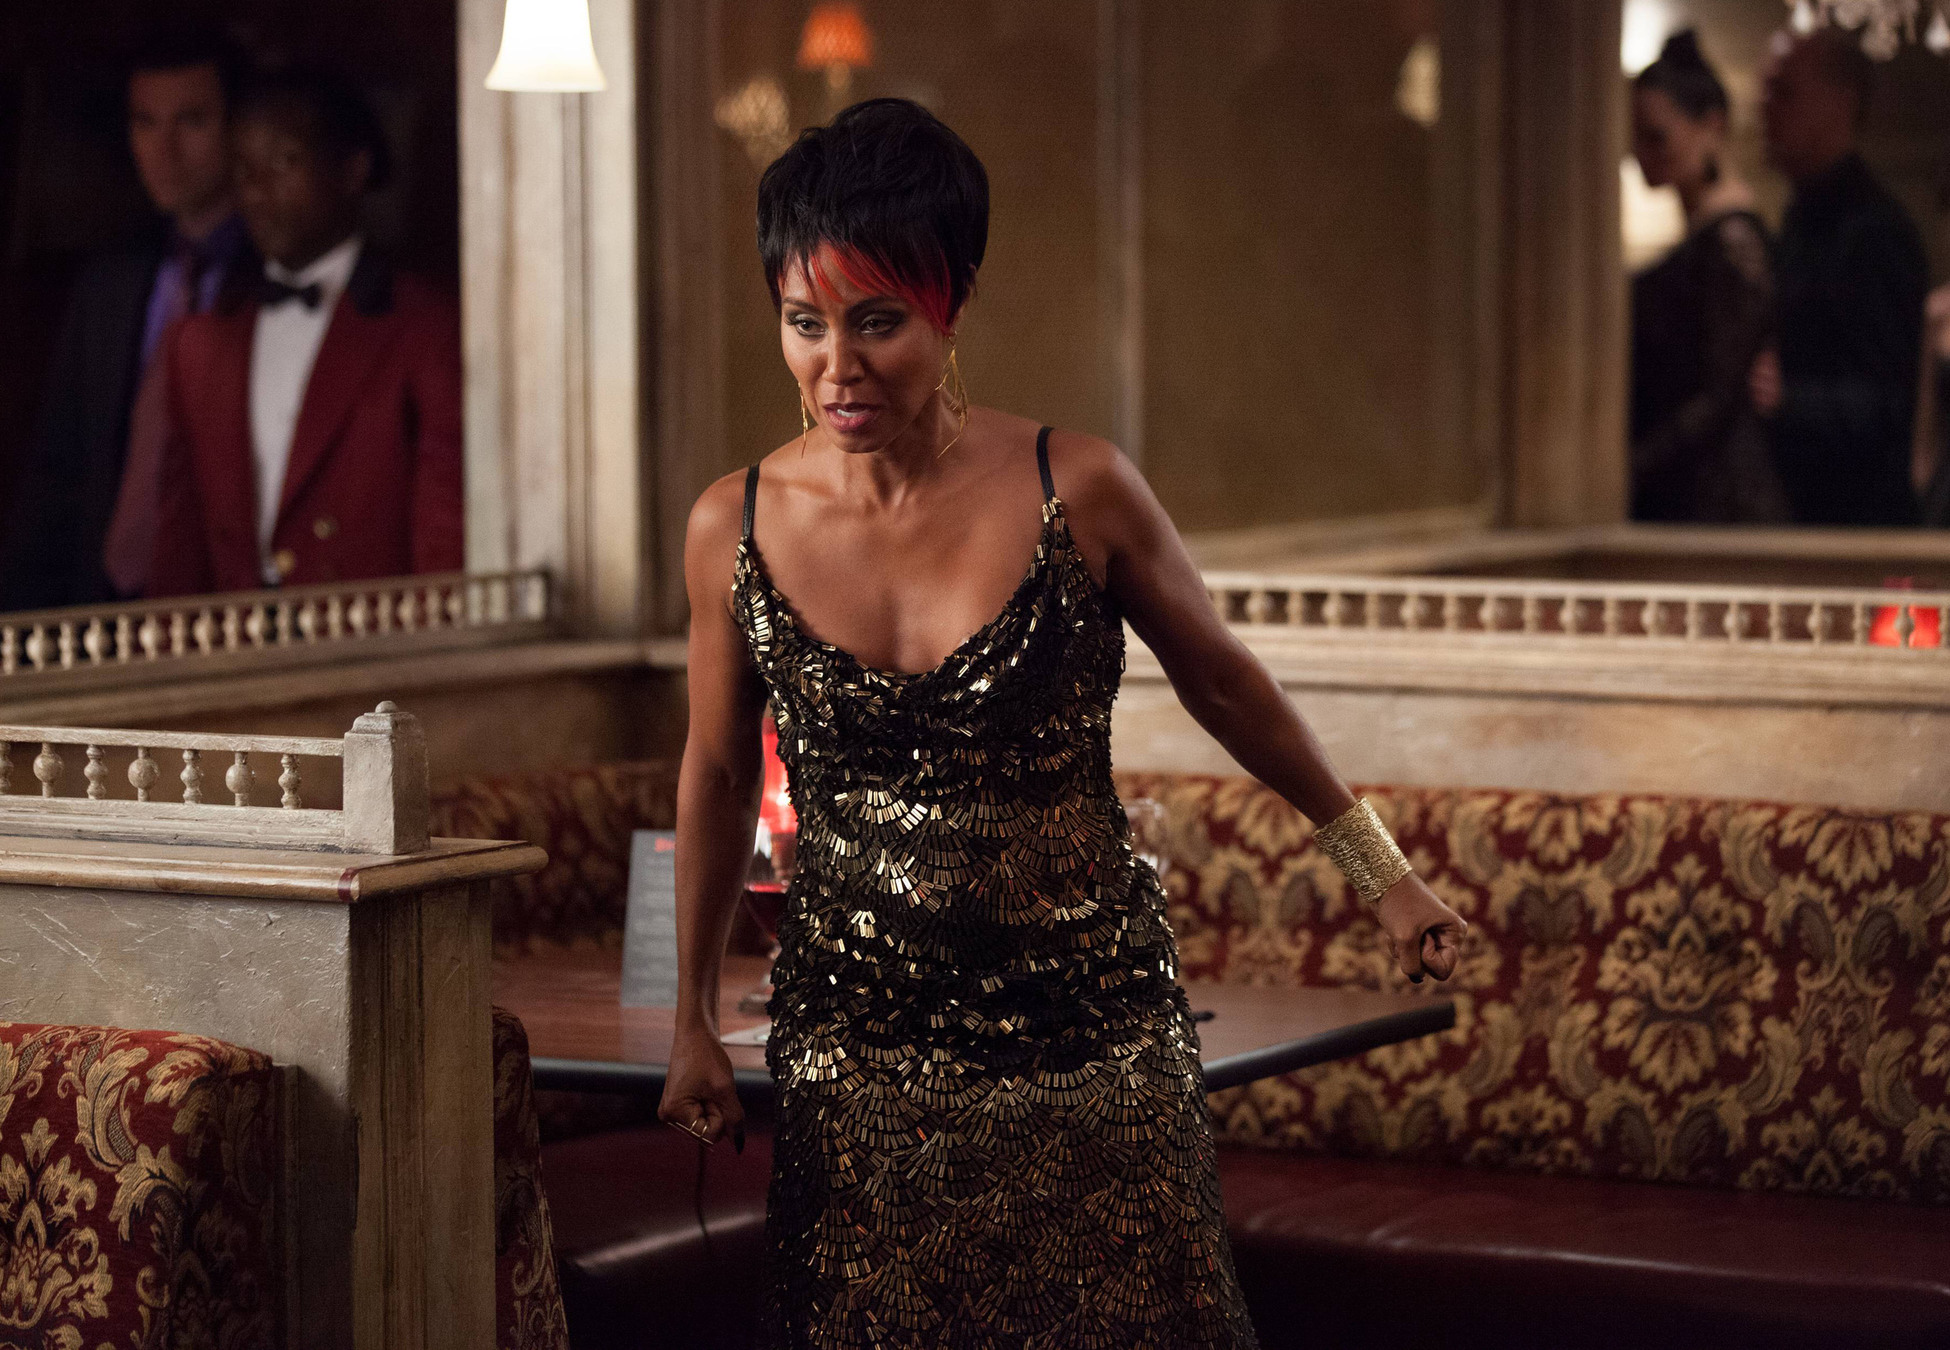 """GOTHAM: Fish Mooney (Jada Pinkett Smith) orders everyone to leave her club in the """"Selina Kyle"""" episode of GOTHAM airing Monday, Sept. 29 (8:00-9:00 PM ET/PT) on FOX. ©2014 Fox Broadcasting Co. Cr: Jessica Miglio/FOX"""